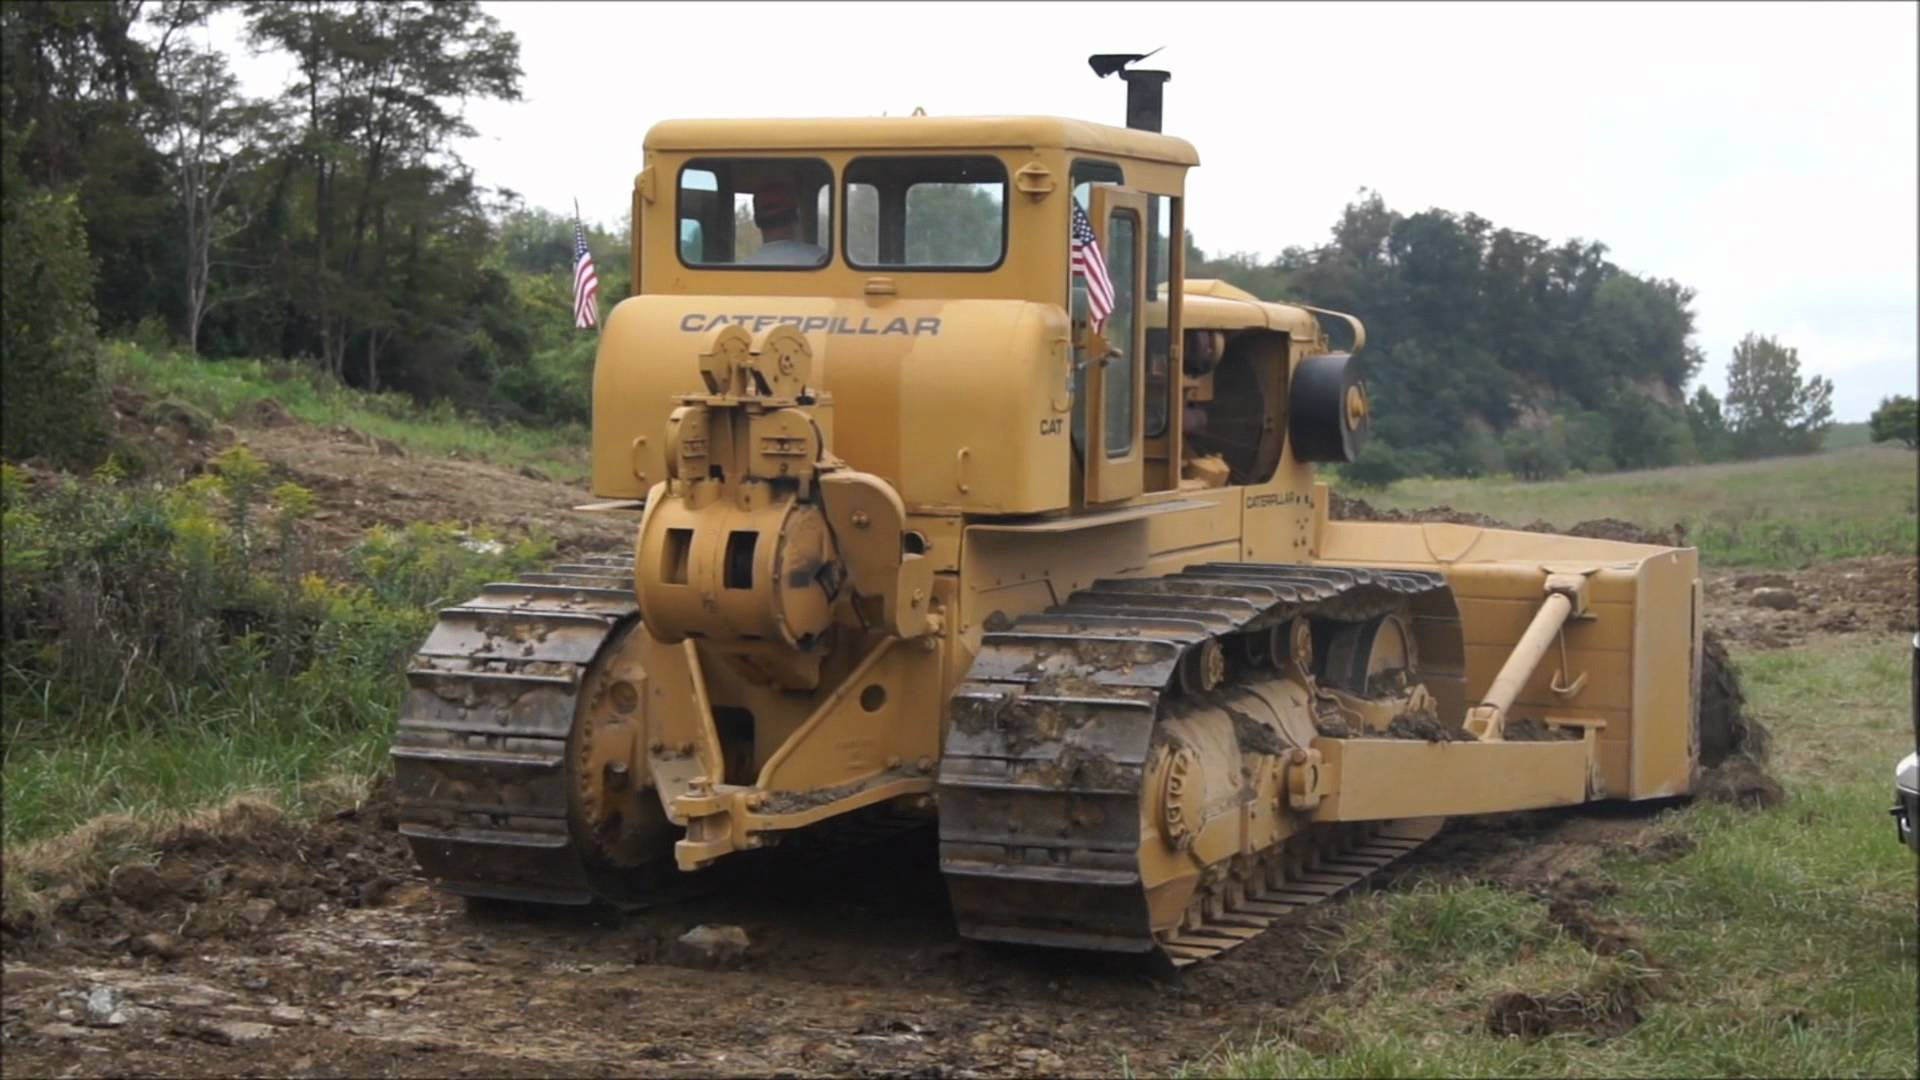 Caterpillar d9 photo - 6